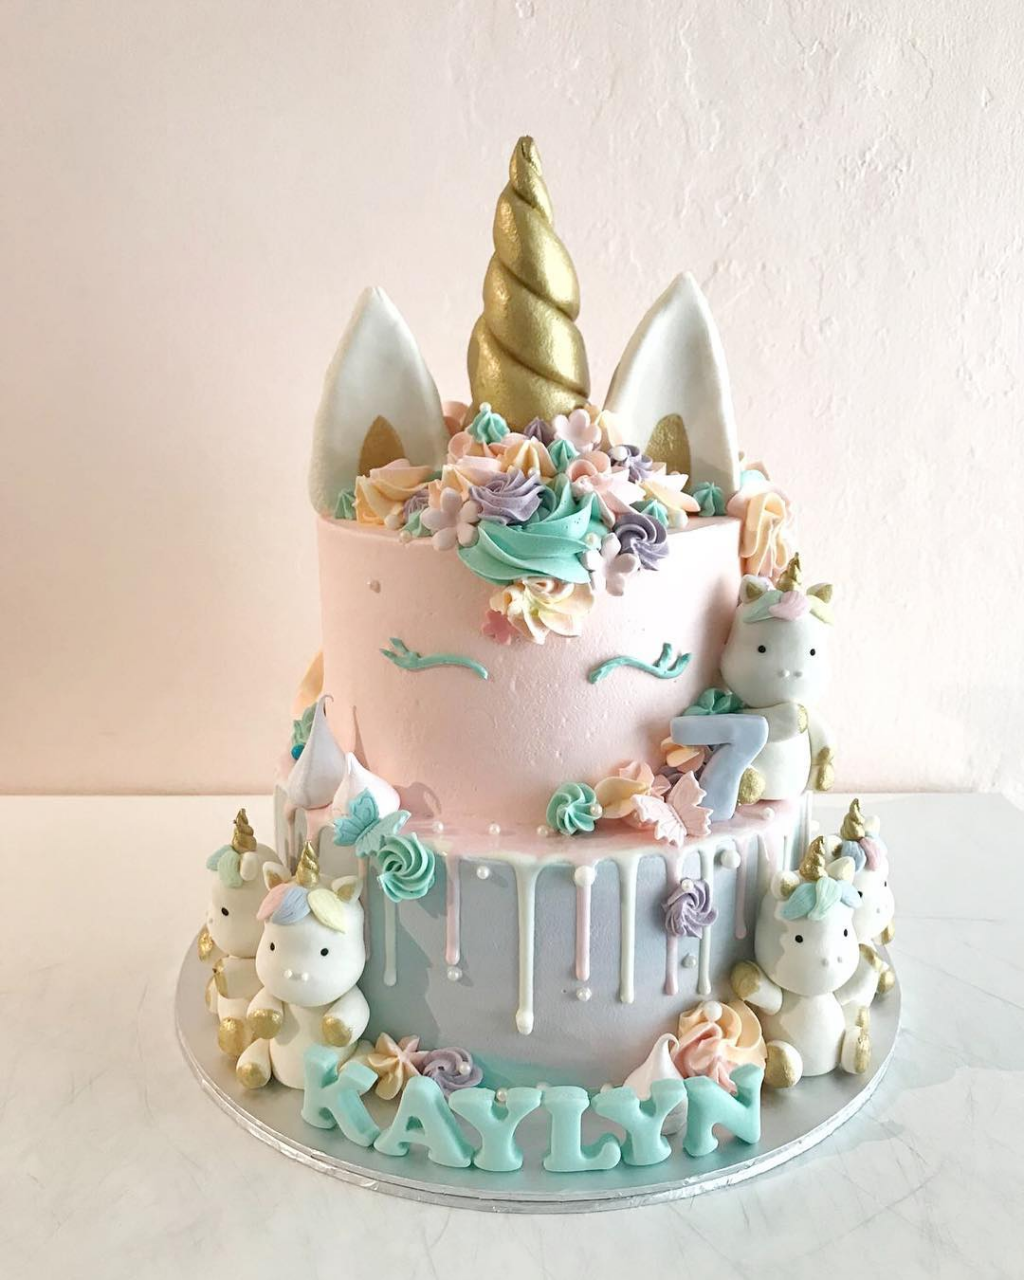 10 Bakeries To Get Customised Cakes In Singapore Make Your